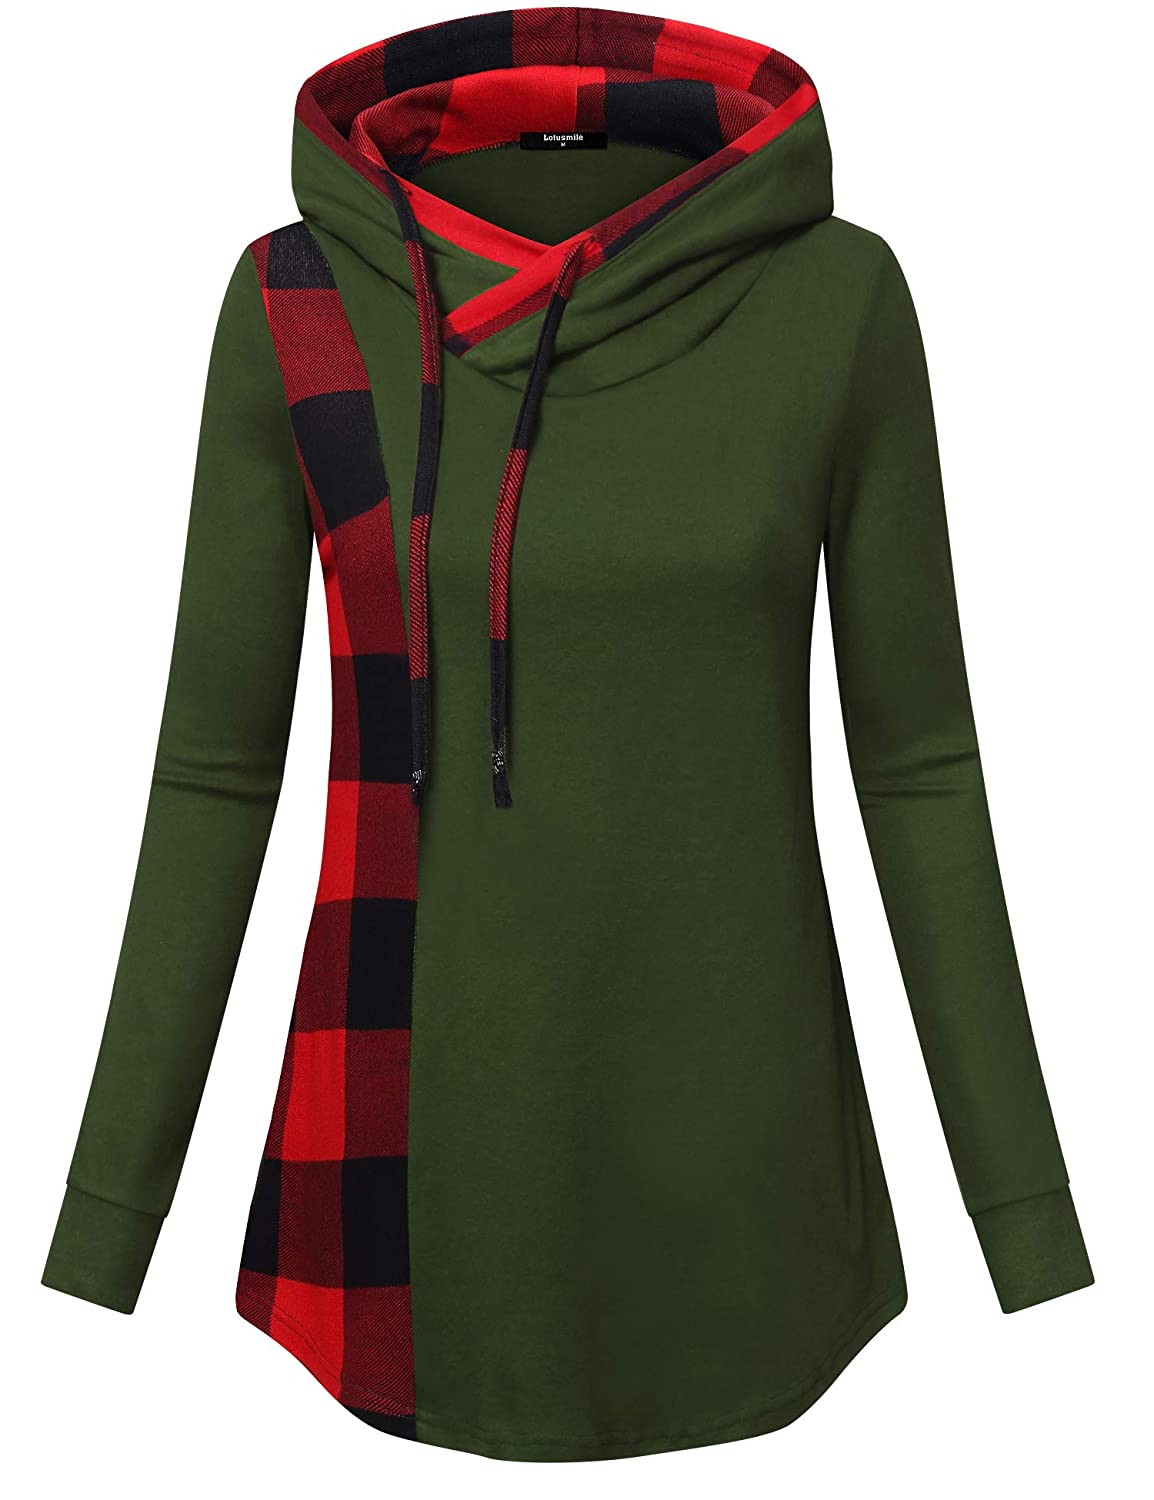 40b204005c Lotusmile Casual Hoodies for Women with Pockets,Plaid Sweatshirts Flowy  Tunic Long Sleeve Pullovers